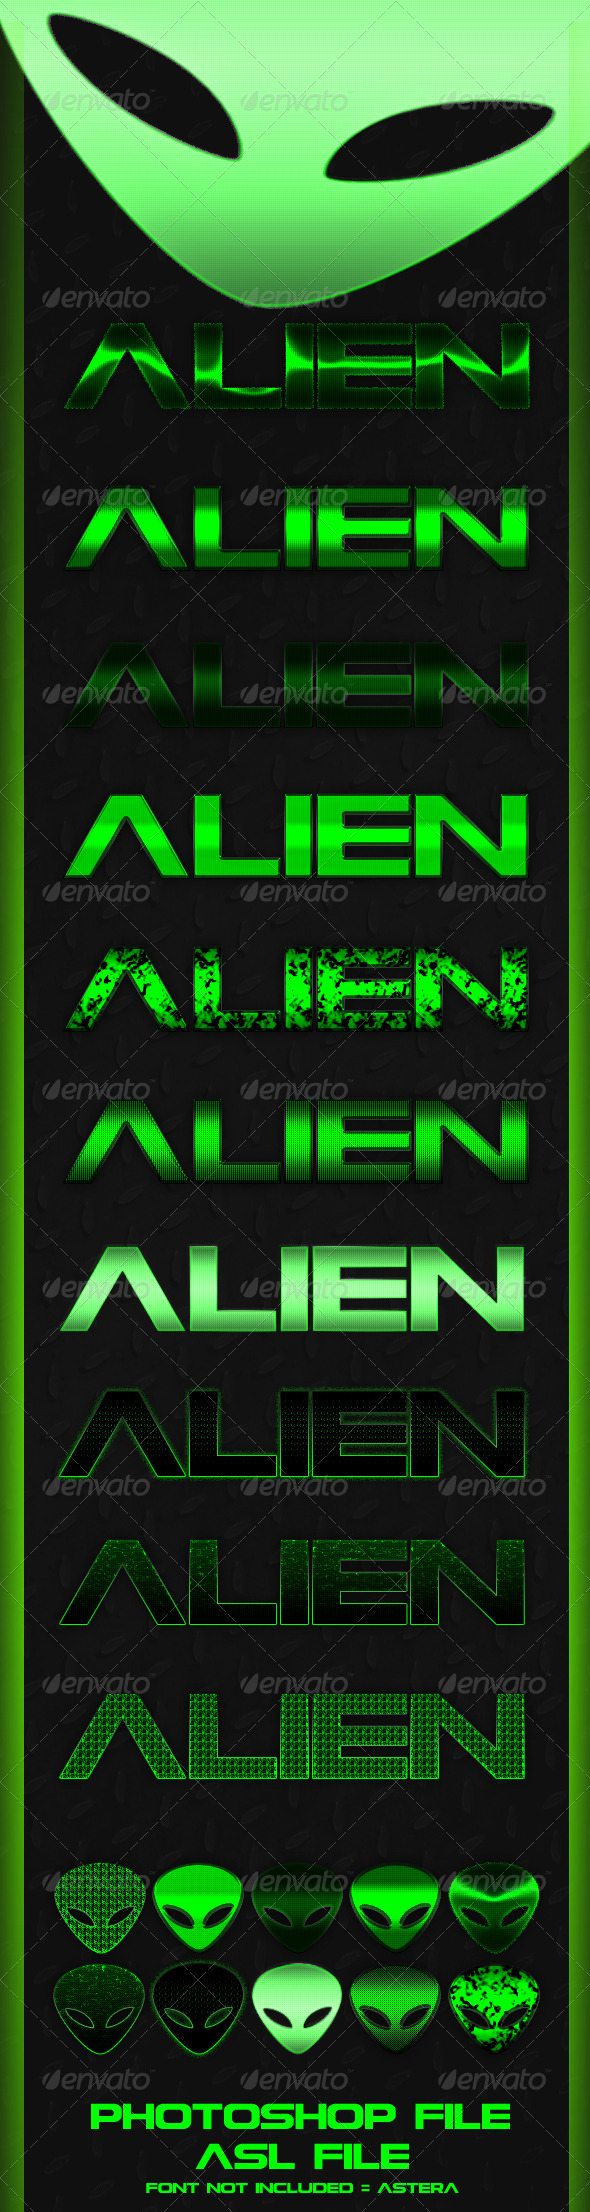 GraphicRiver 10 Alien Text Styles 4233176